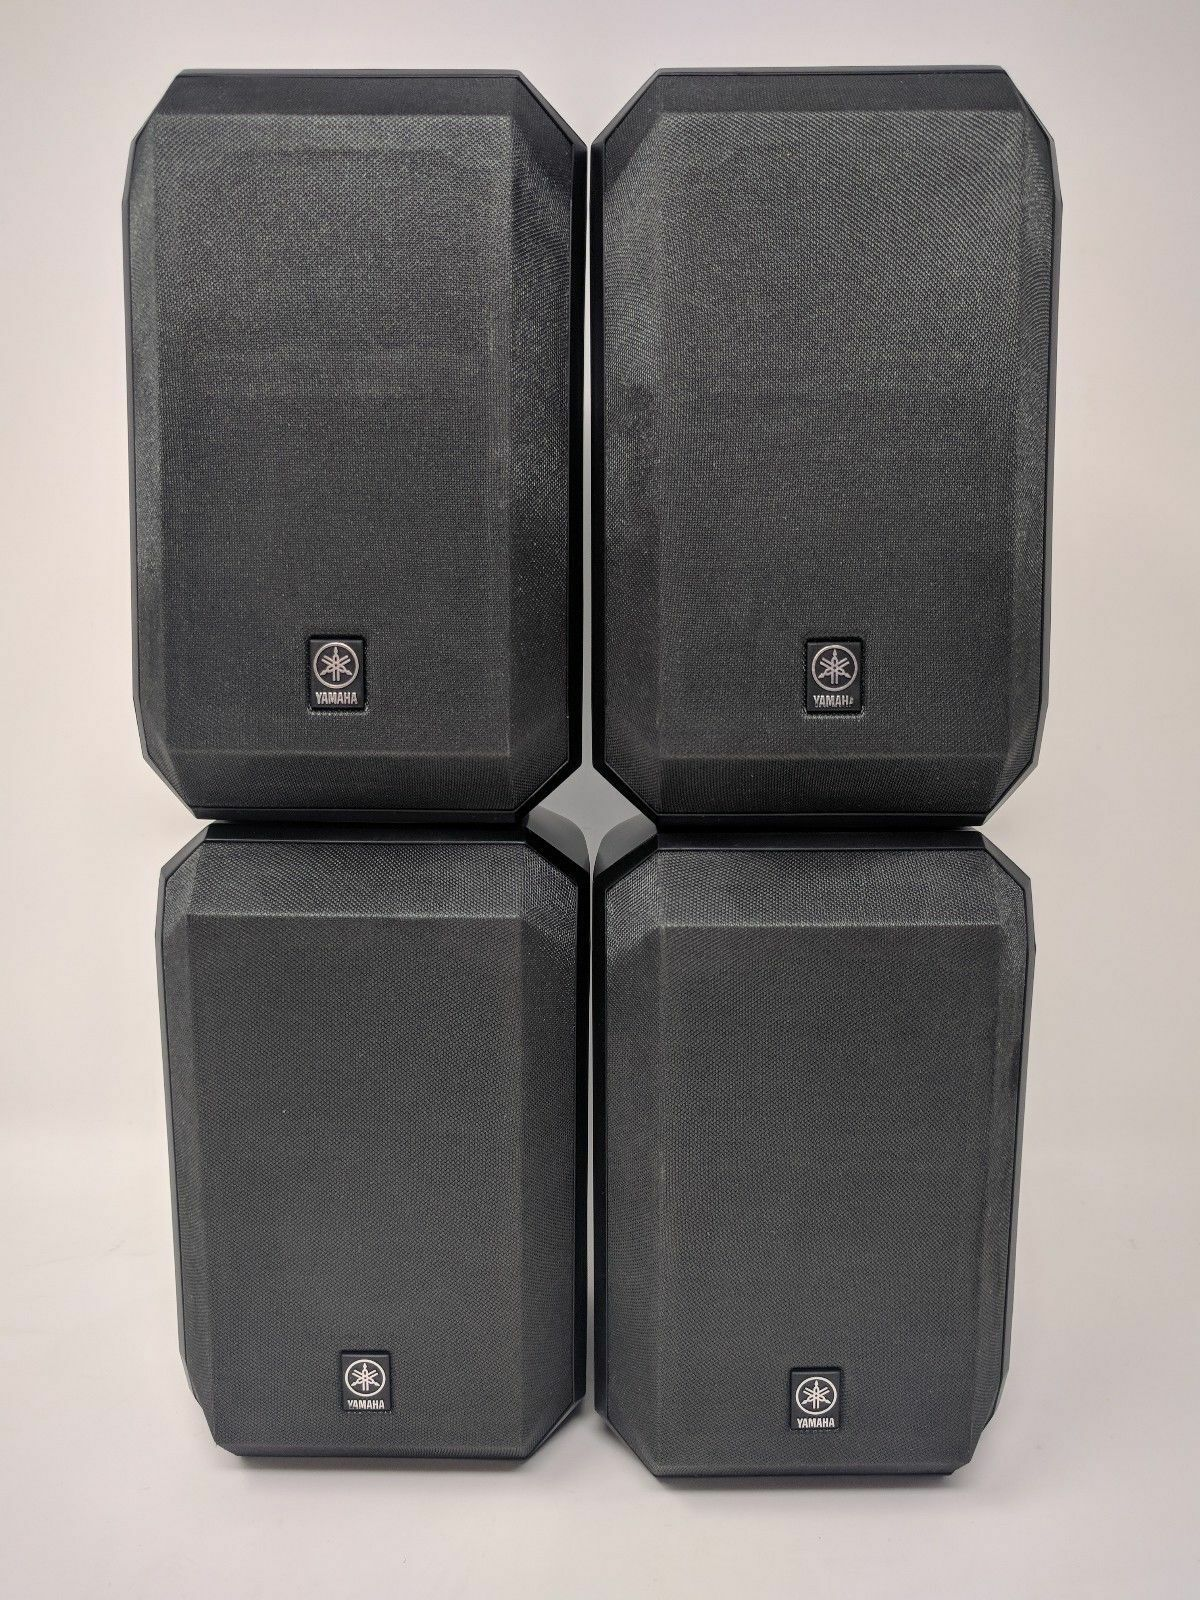 70f530cd5 4 Yamaha Surround Satellite Speakers Ns-ap2600s Black - Great B42 for sale  online